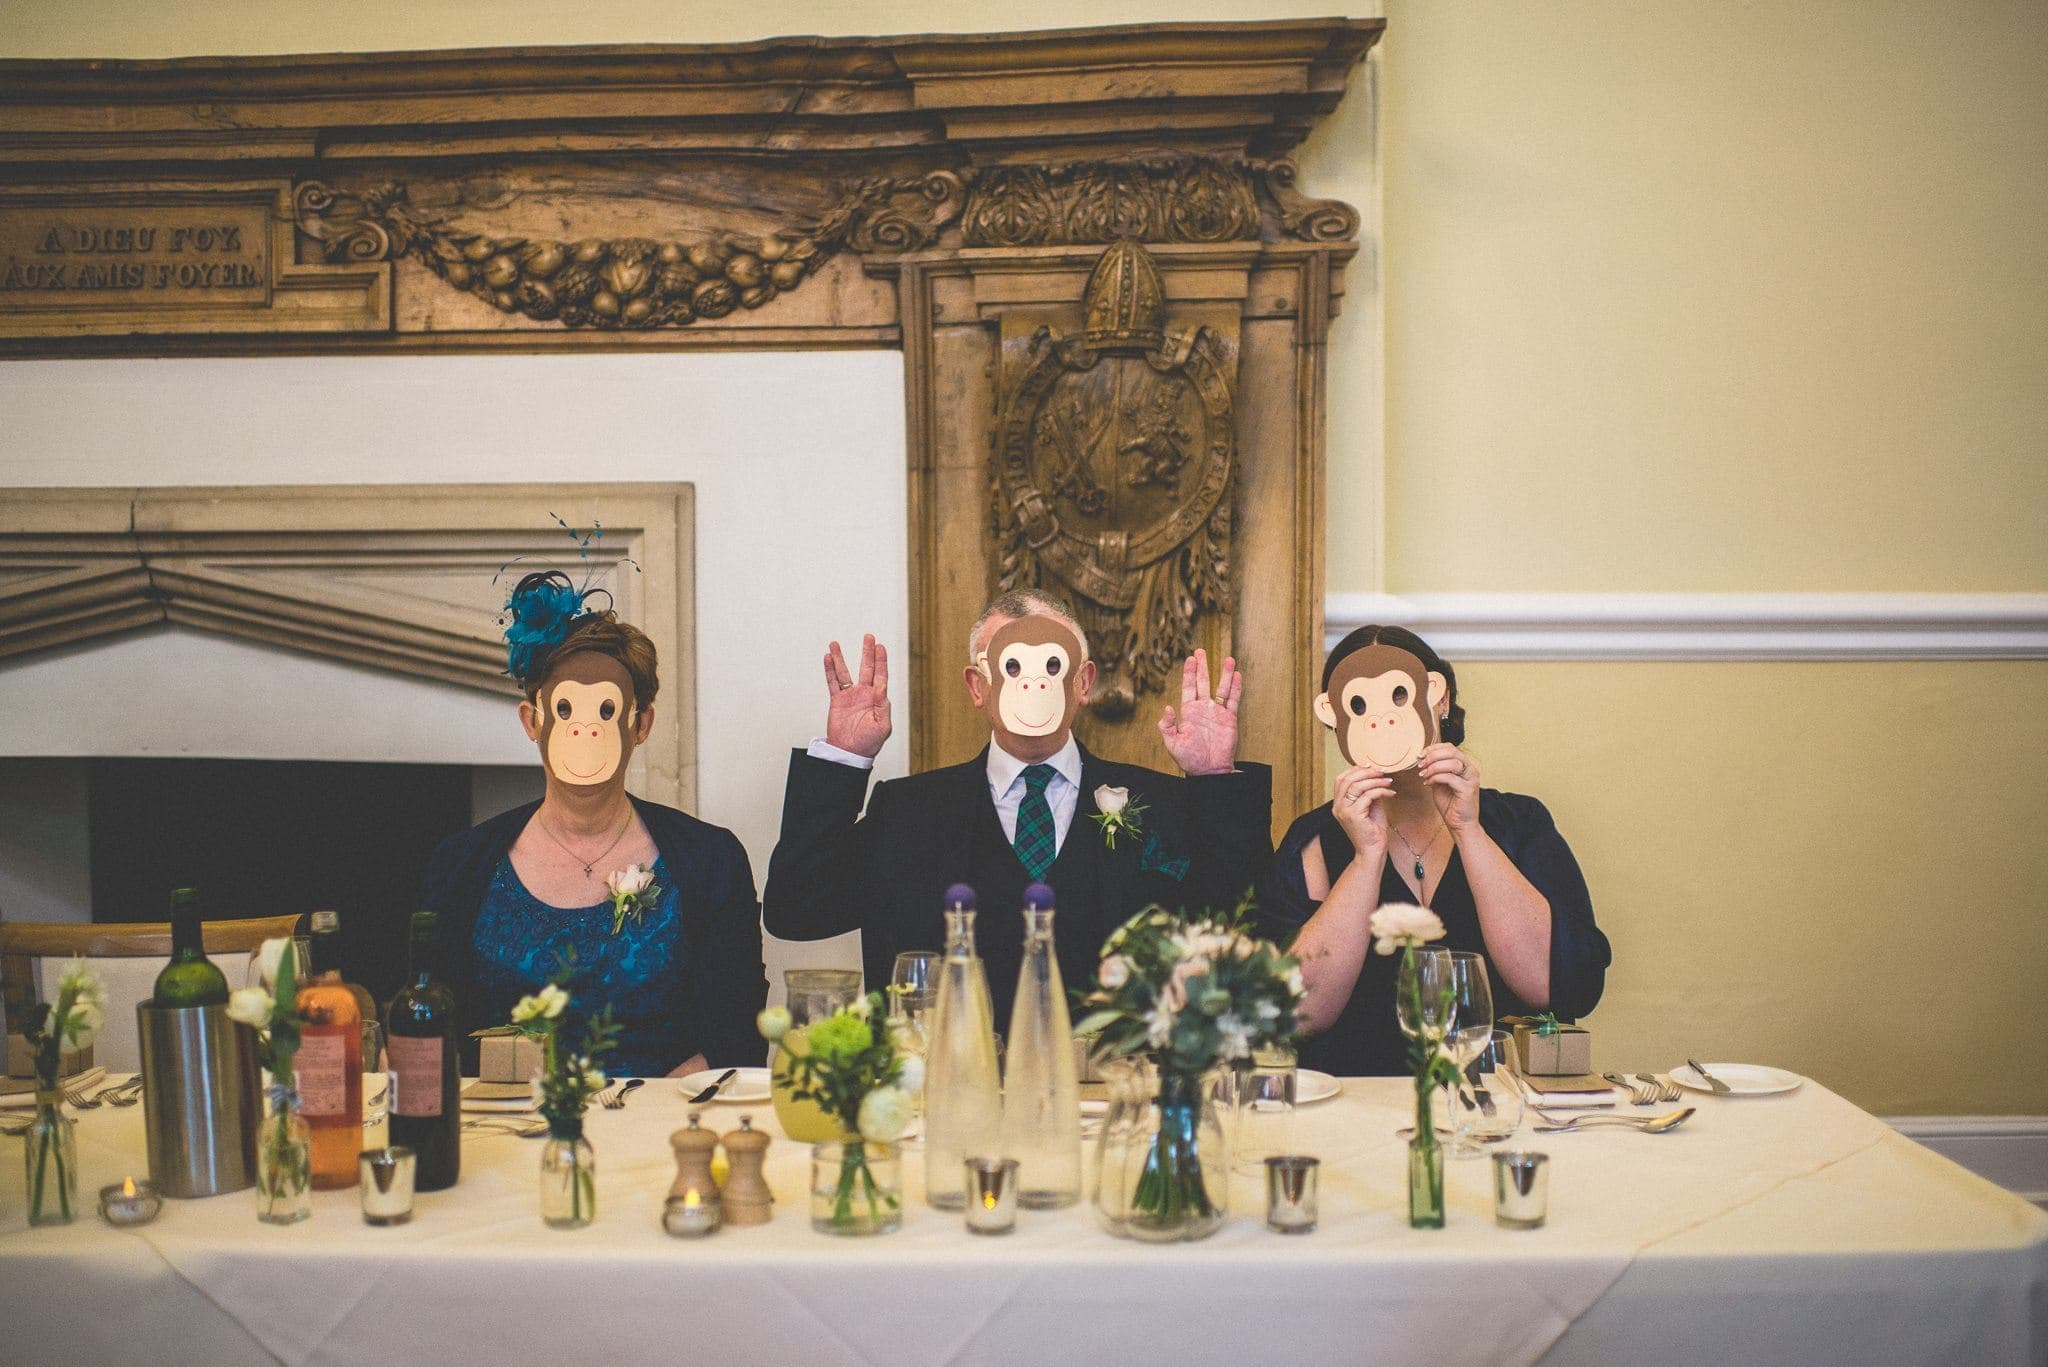 Farnham Castle Wedding guests with monkey masks on